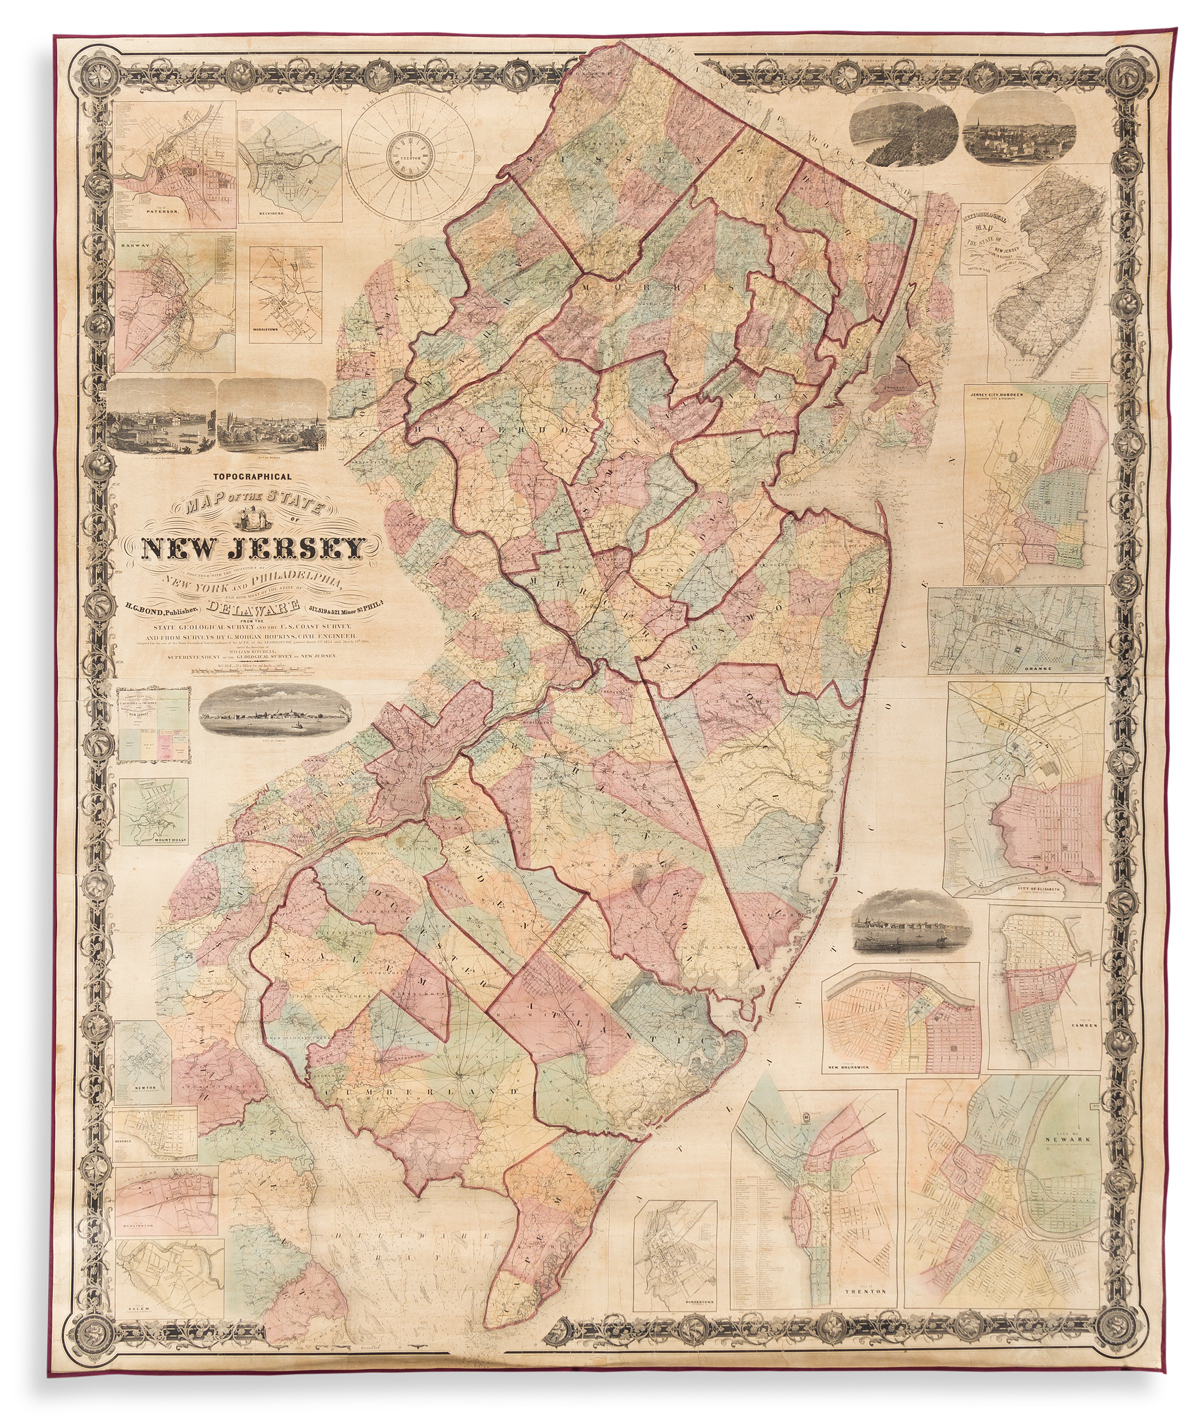 (NEW JERSEY.) William Kitchell. Topographical Map of the State of New Jersey